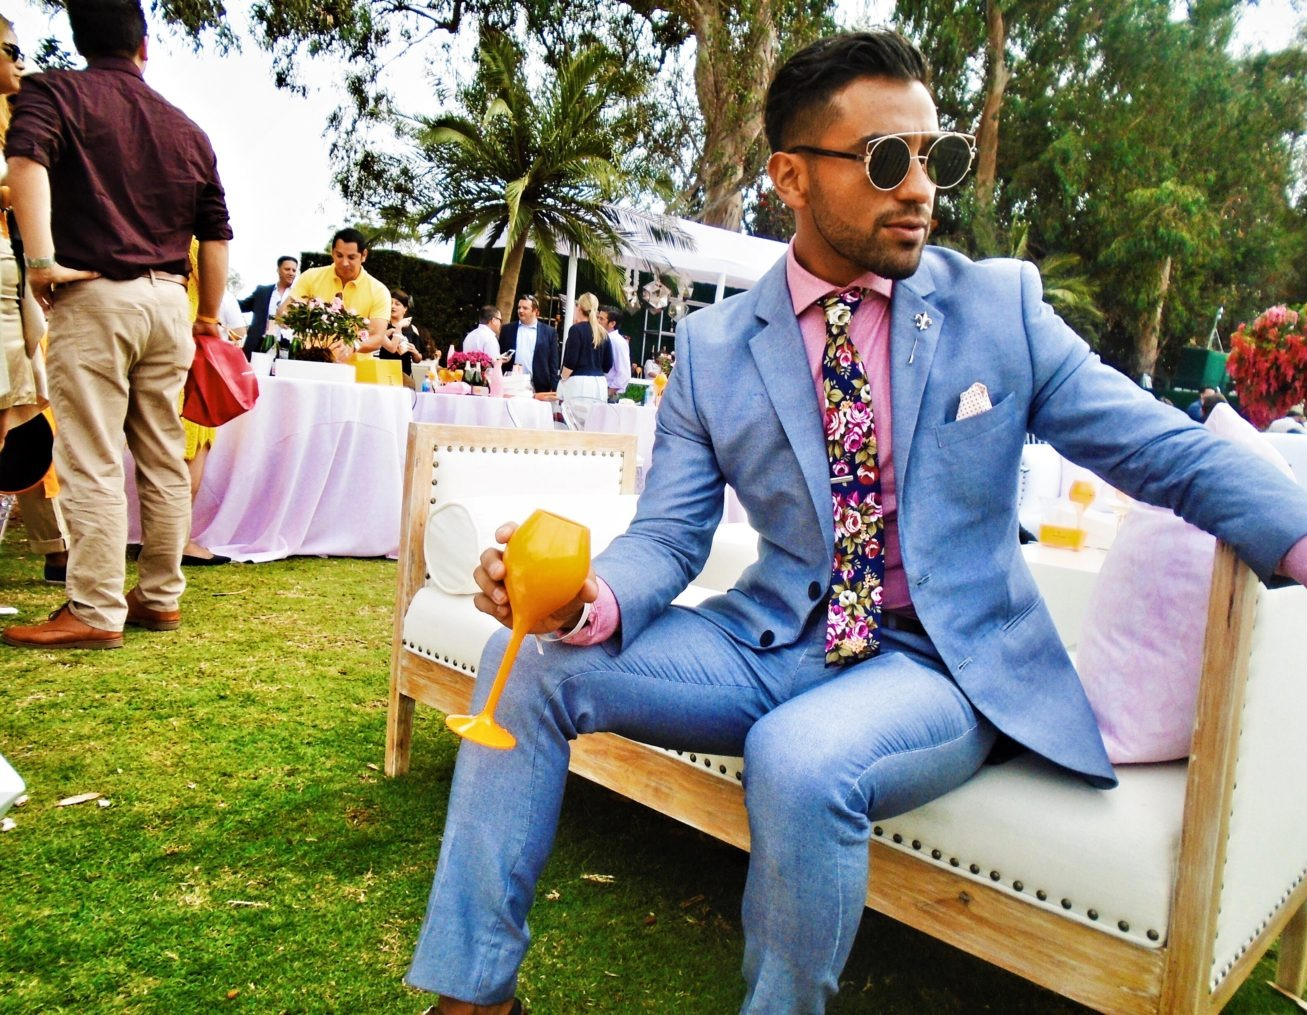 Man in suit drinking Veuve Clicquot at Polo